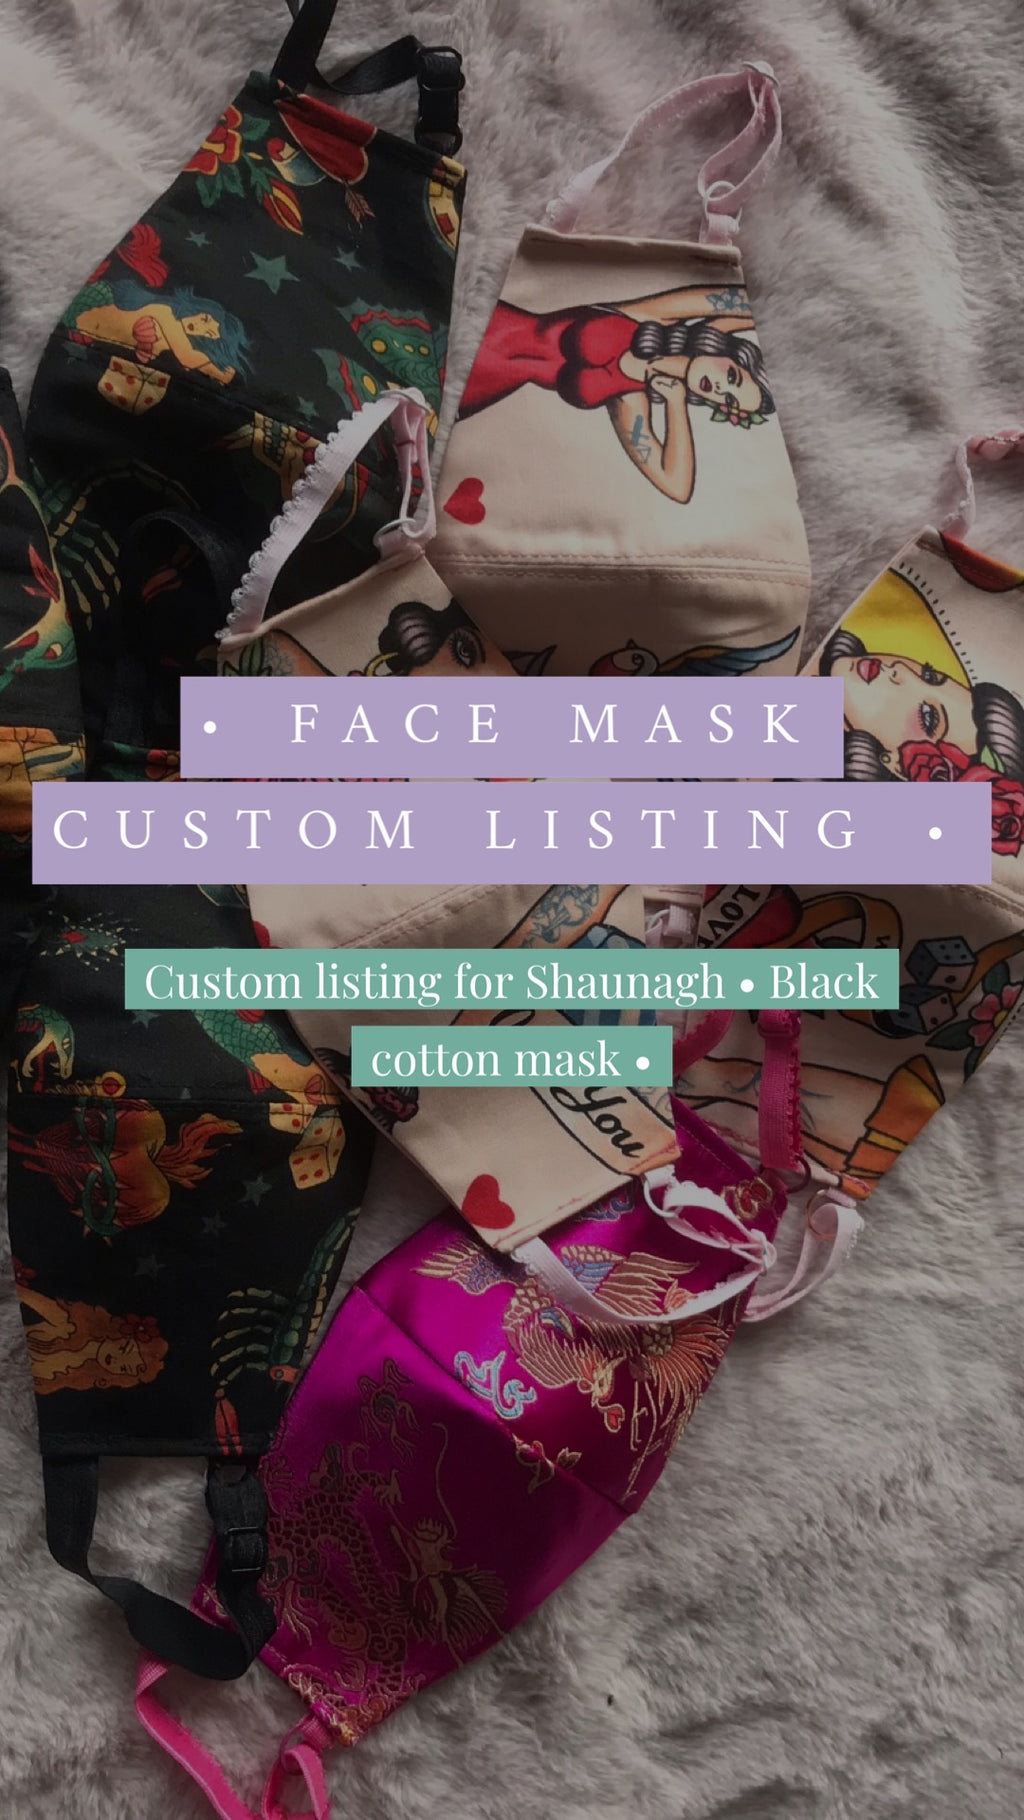 Custom listing - Black cotton face mask for Shaunagh